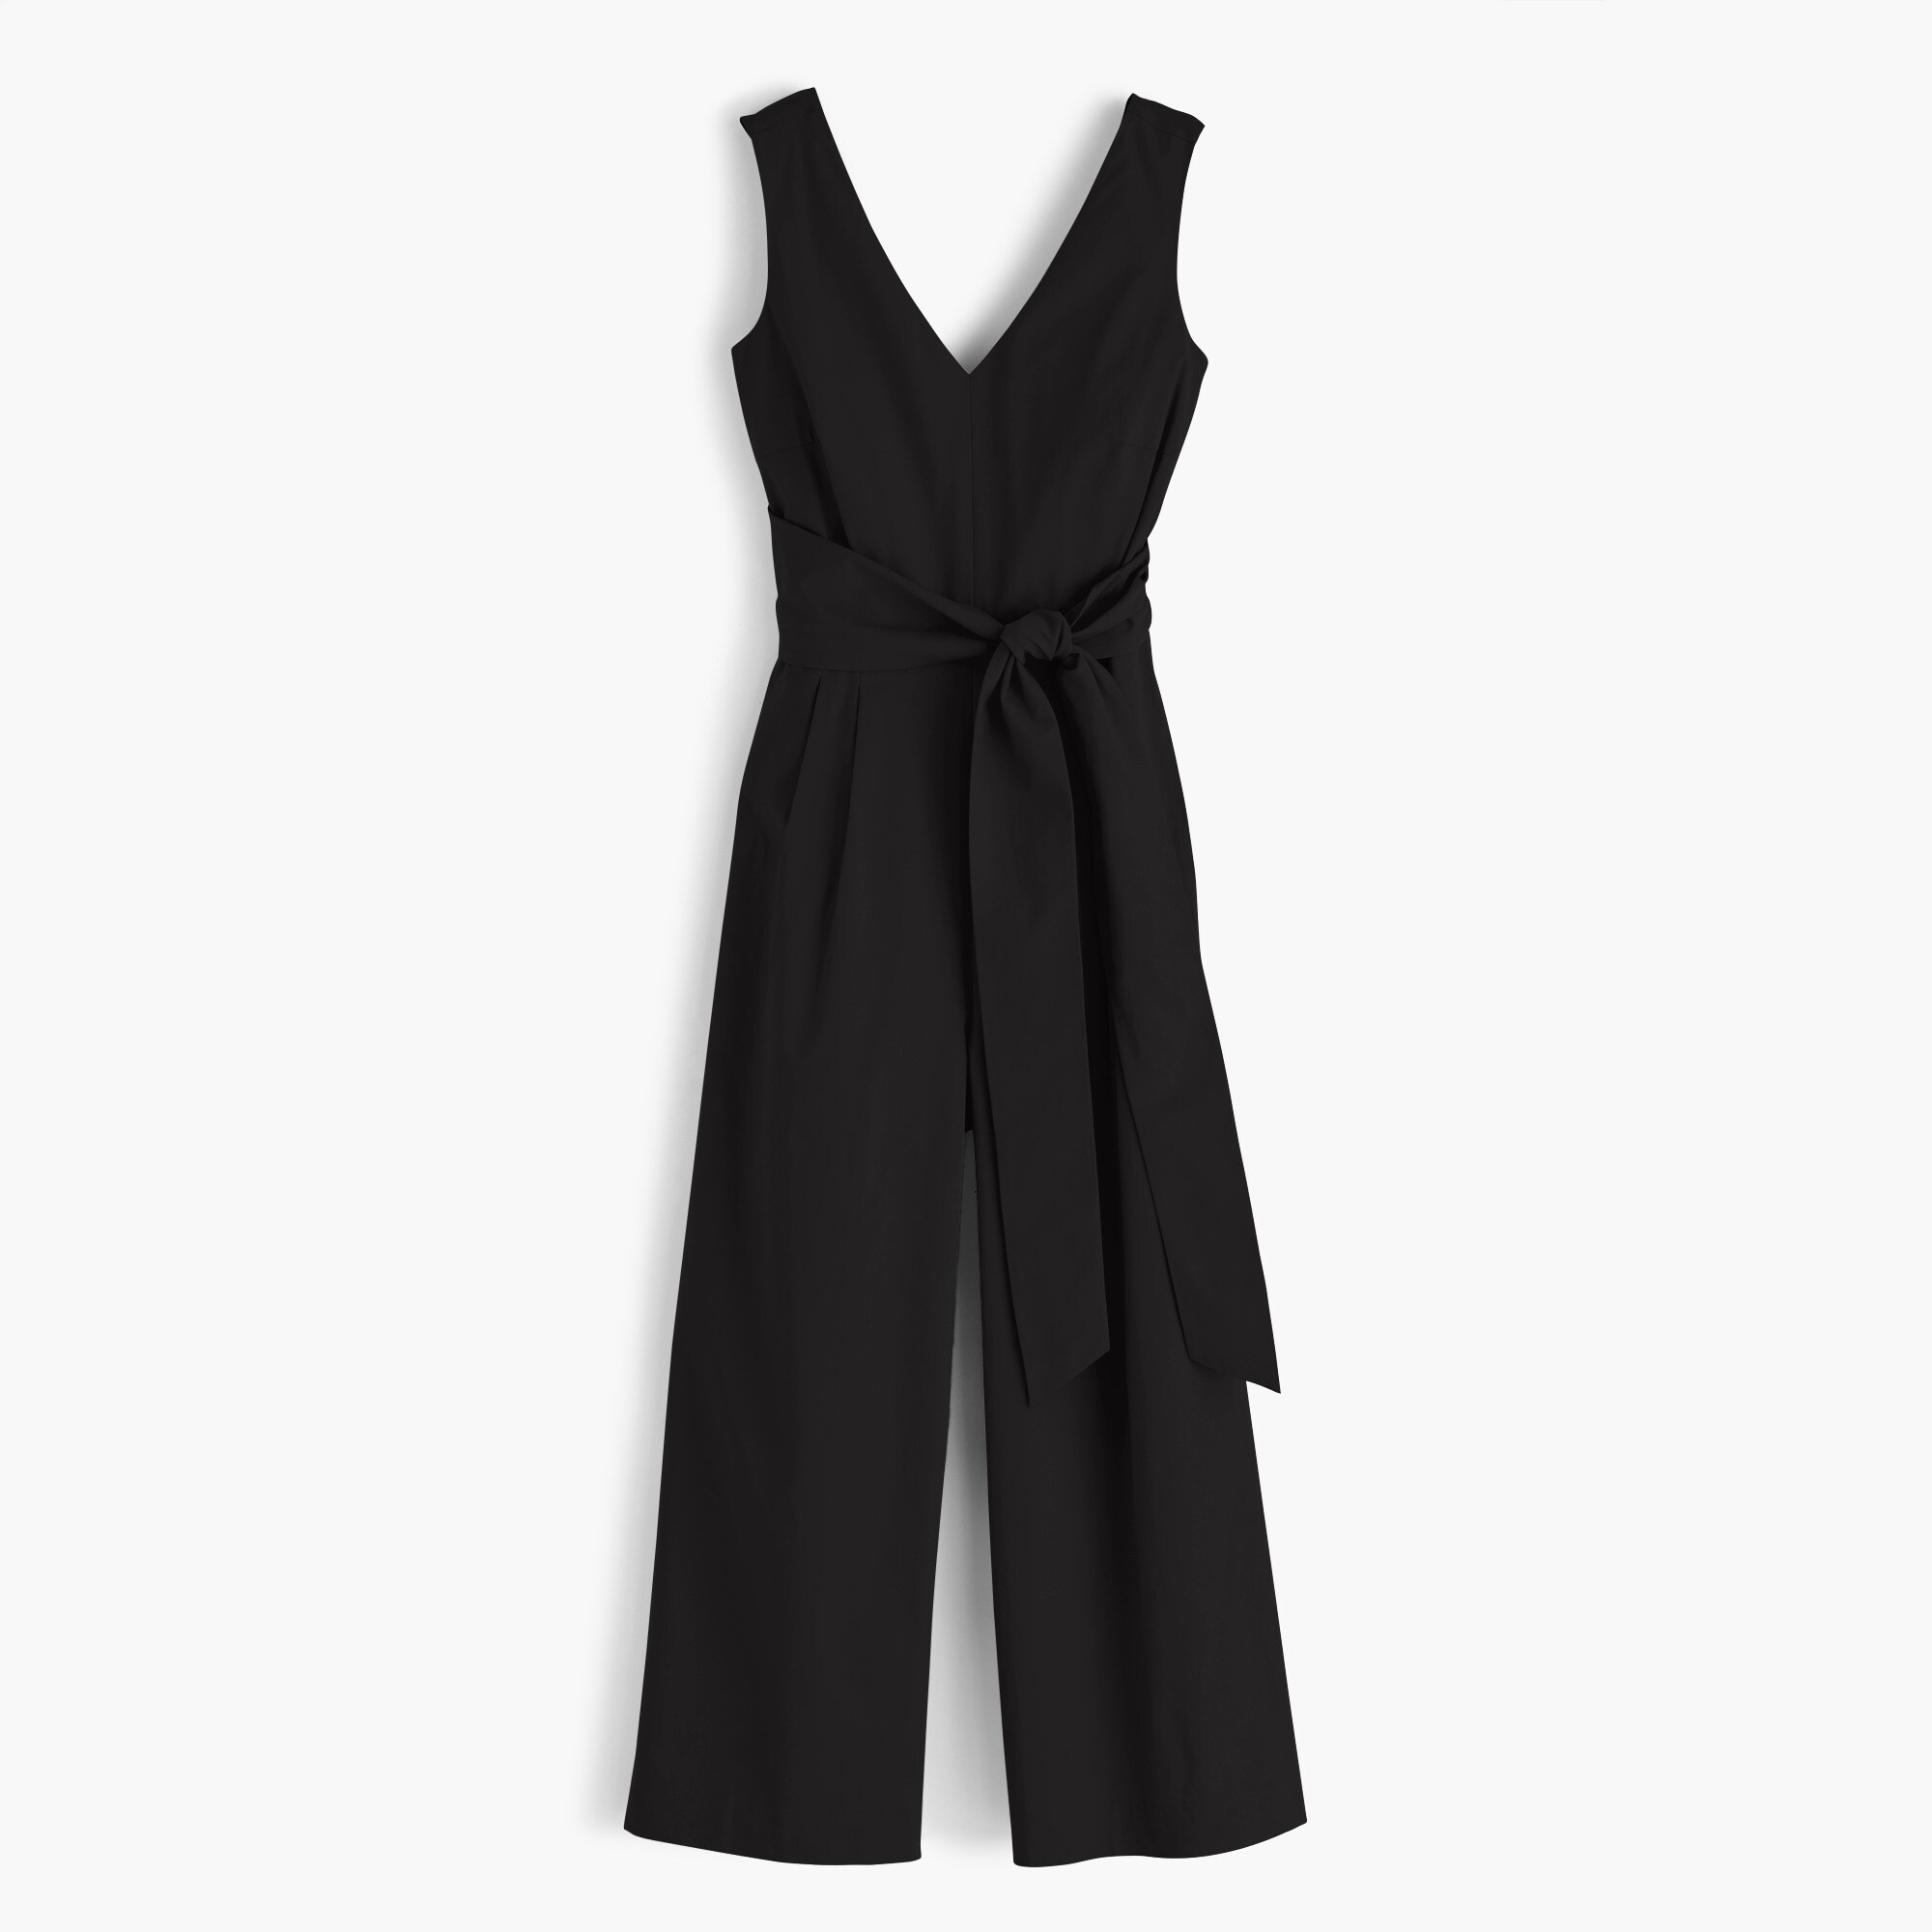 Image 2 for Wrap-tie jumpsuit in stretch poplin